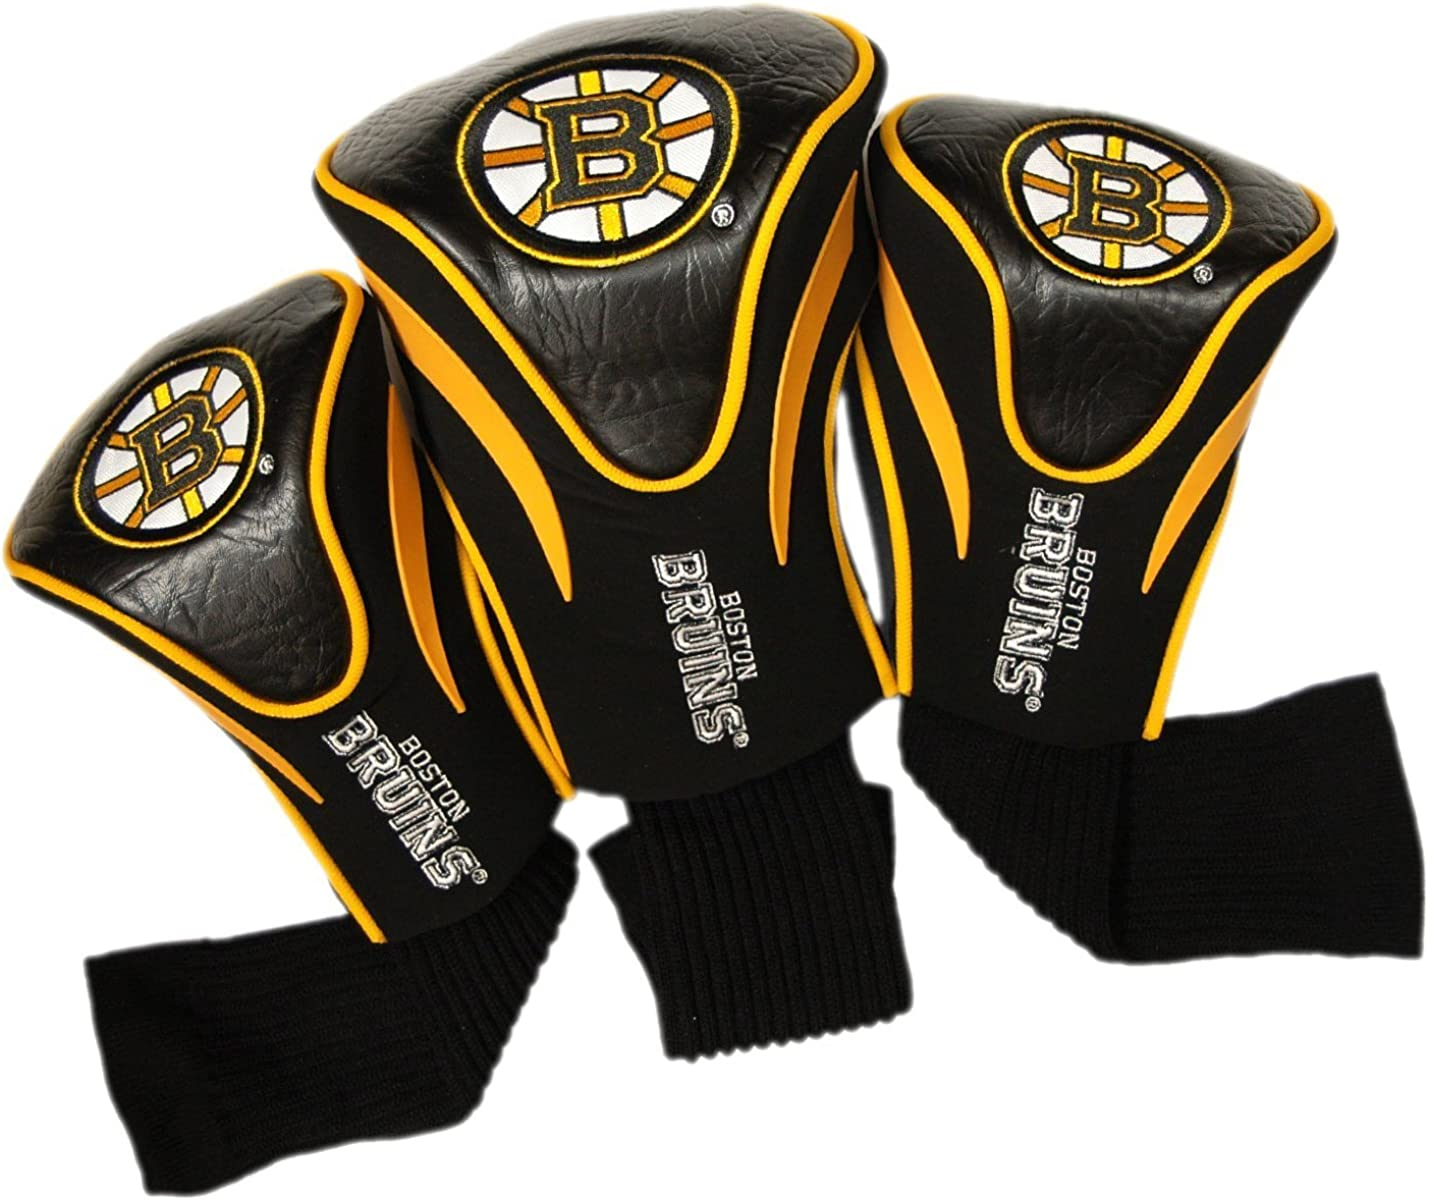 Team Golf NHL Contour Golf Club Headcovers (3 Count), Numbered 1, 3, & X, Fits Oversized Drivers, Utility, Rescue & Fairway Clubs, Velour lined for Extra Club Protection